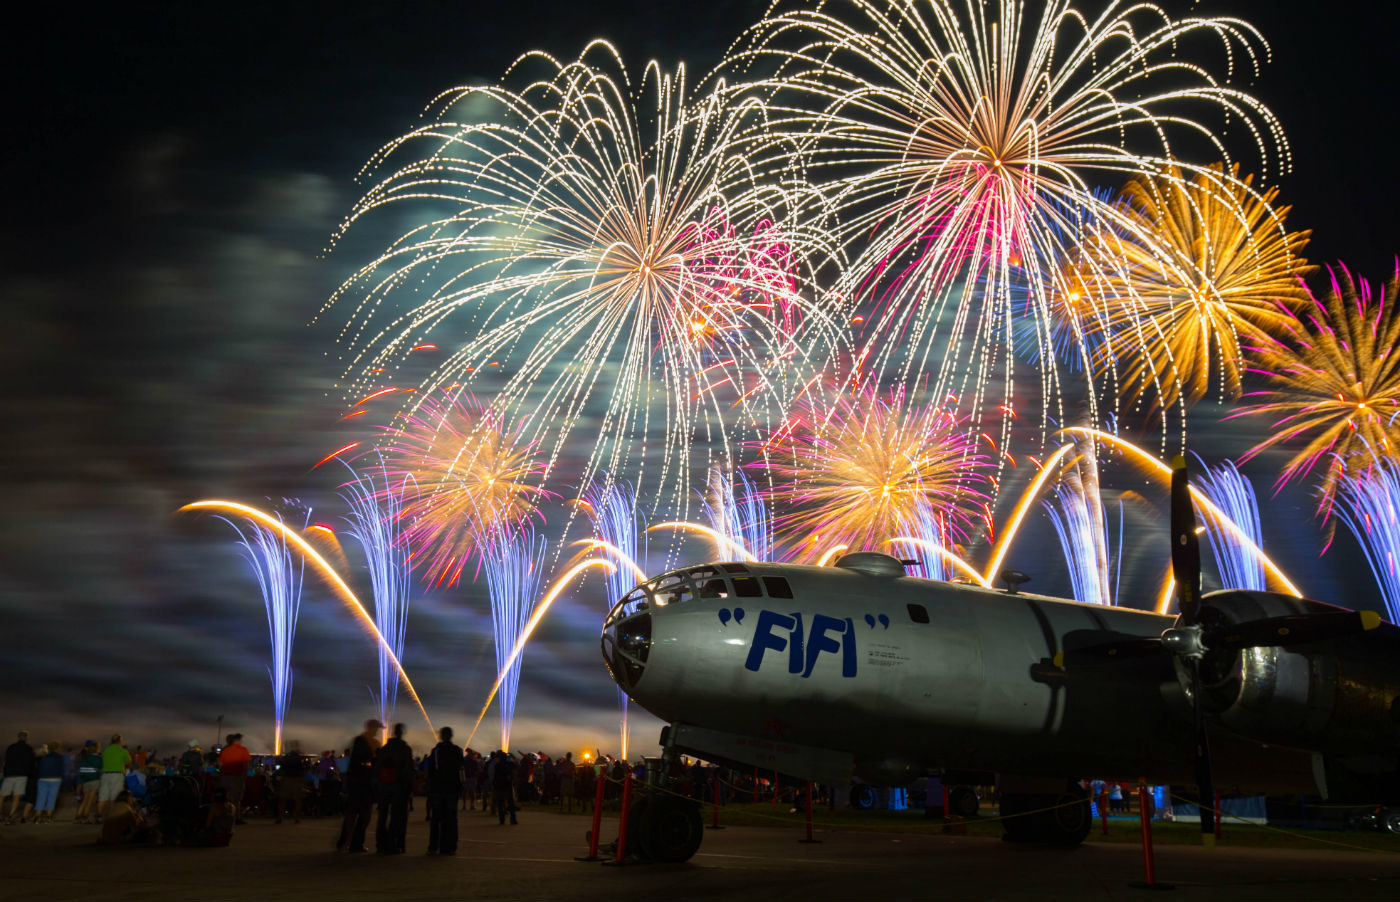 A newly restored Boeing B-29 sits on the tarmac during a beautiful firework display. Warren Liebmann Photo